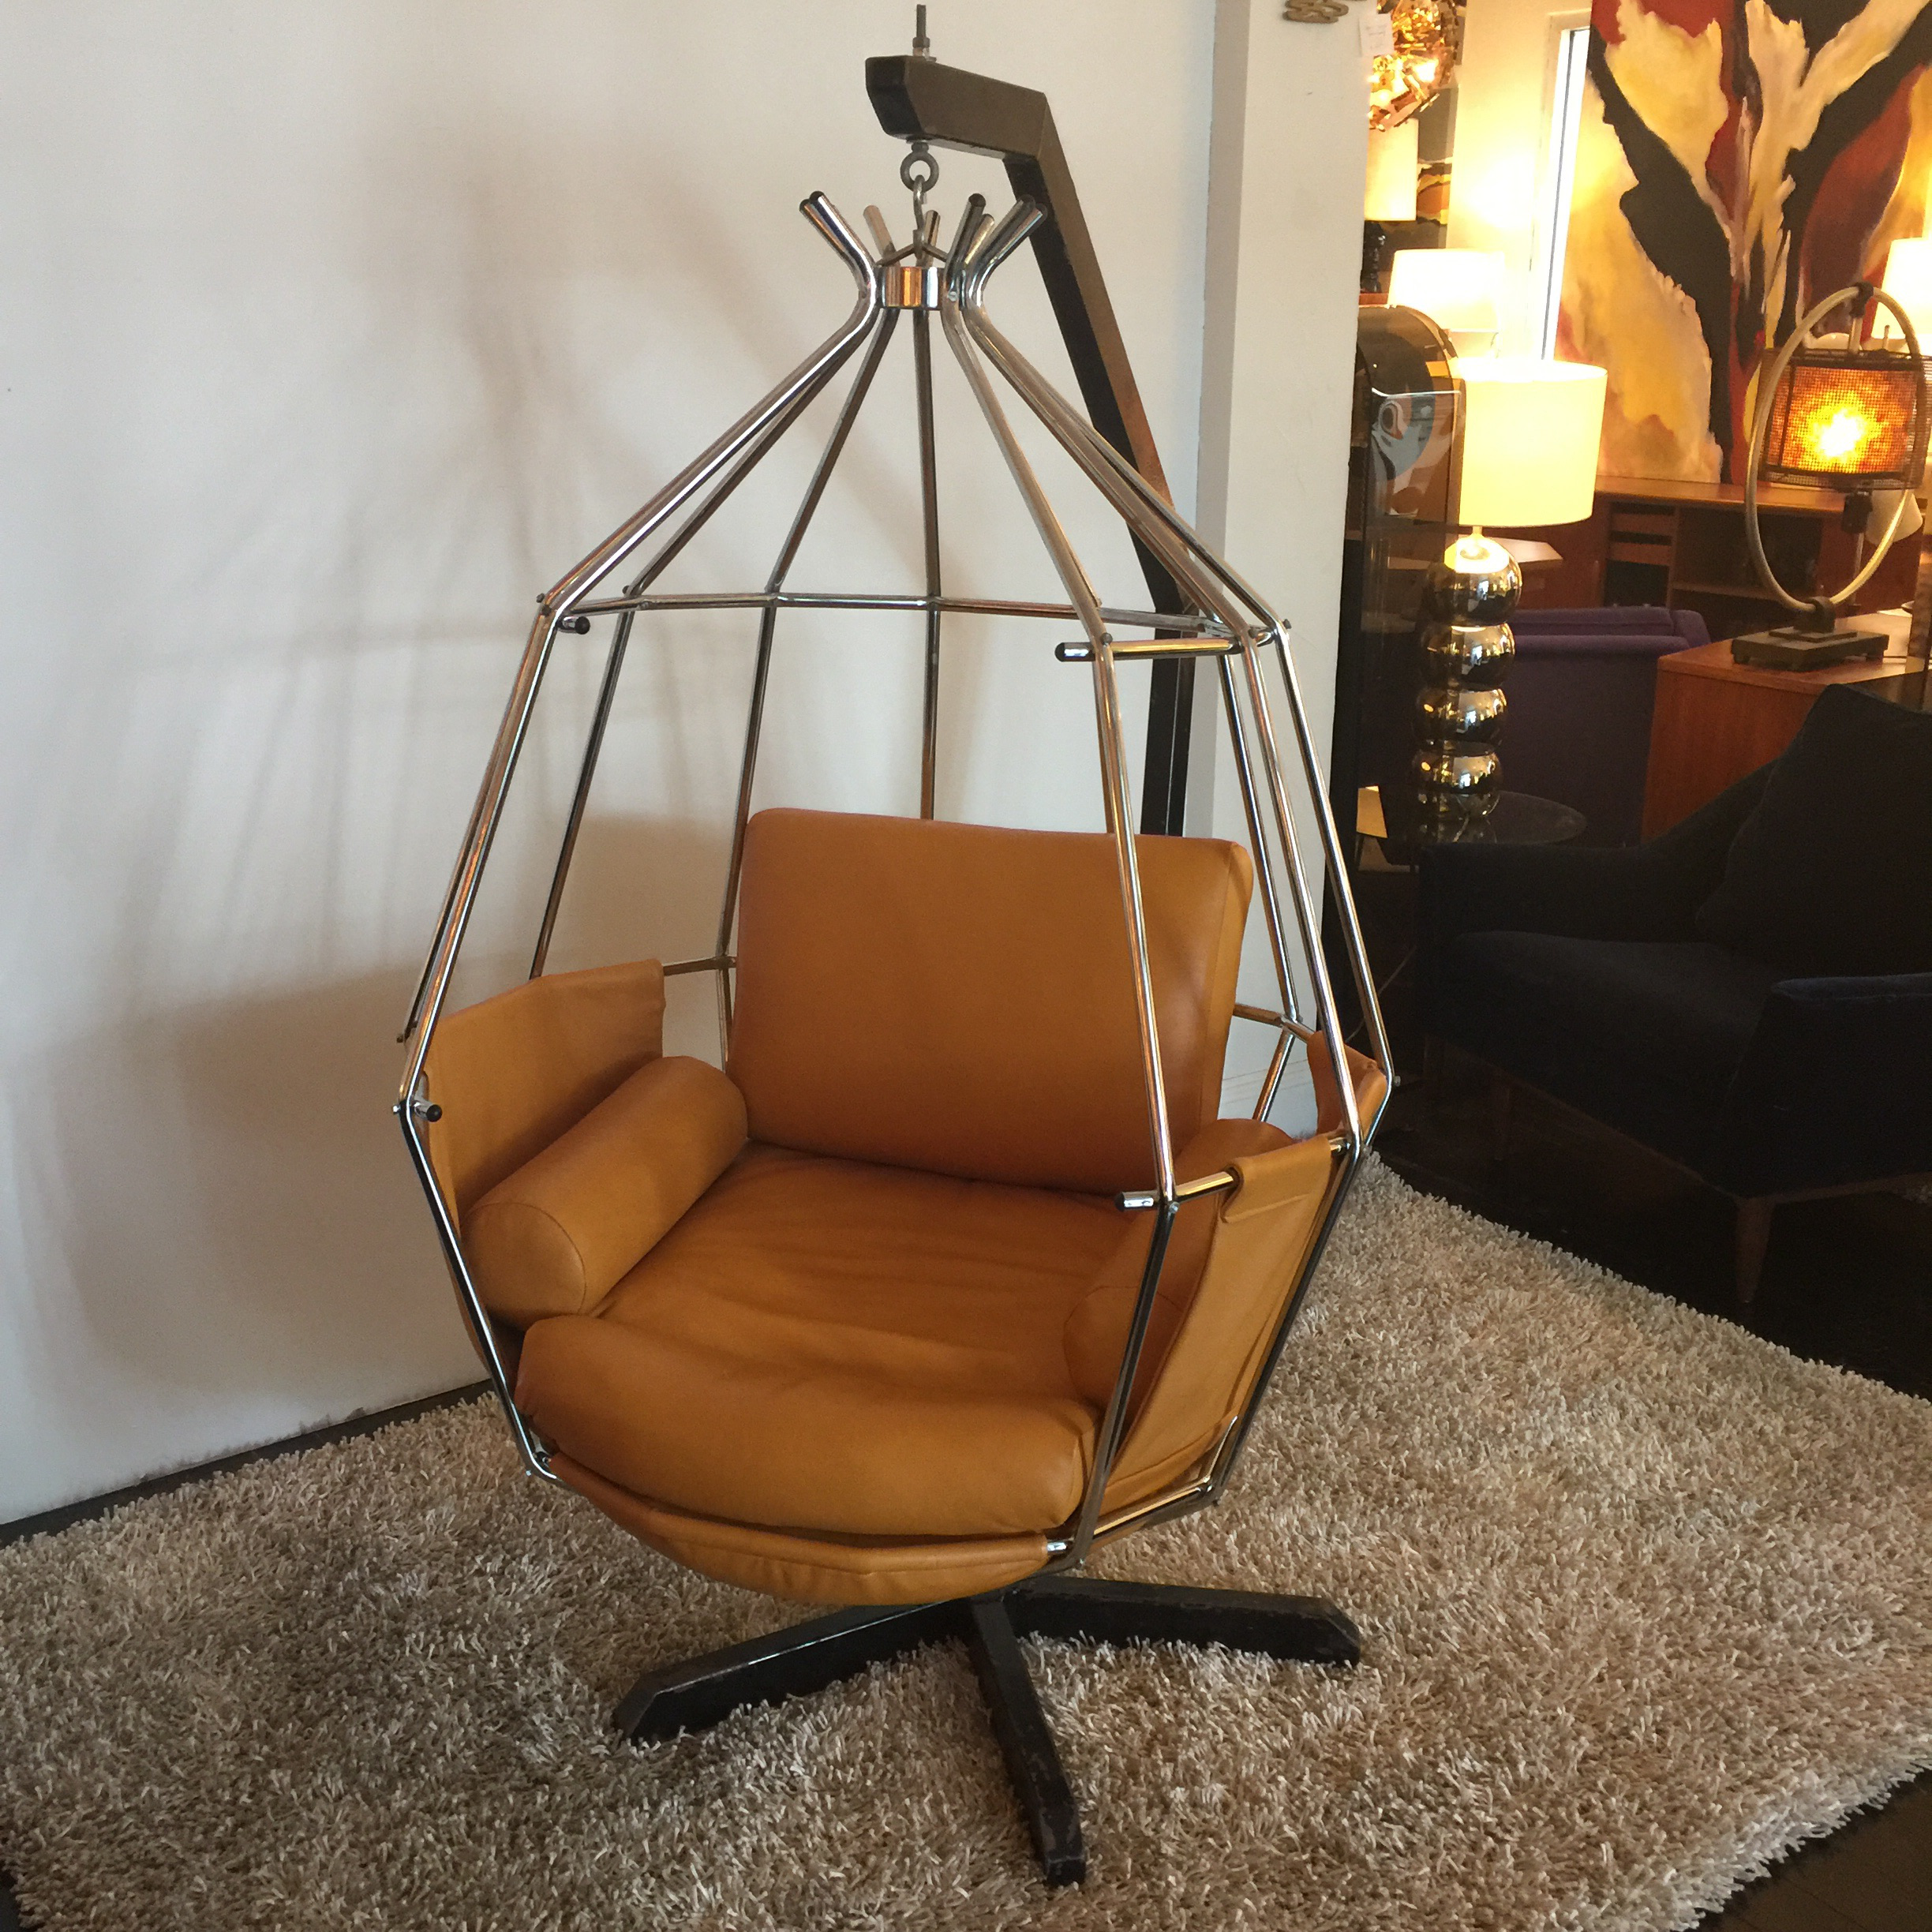 Attractive Arberg Hanging Birdcage Chair   Image 3 Of 6